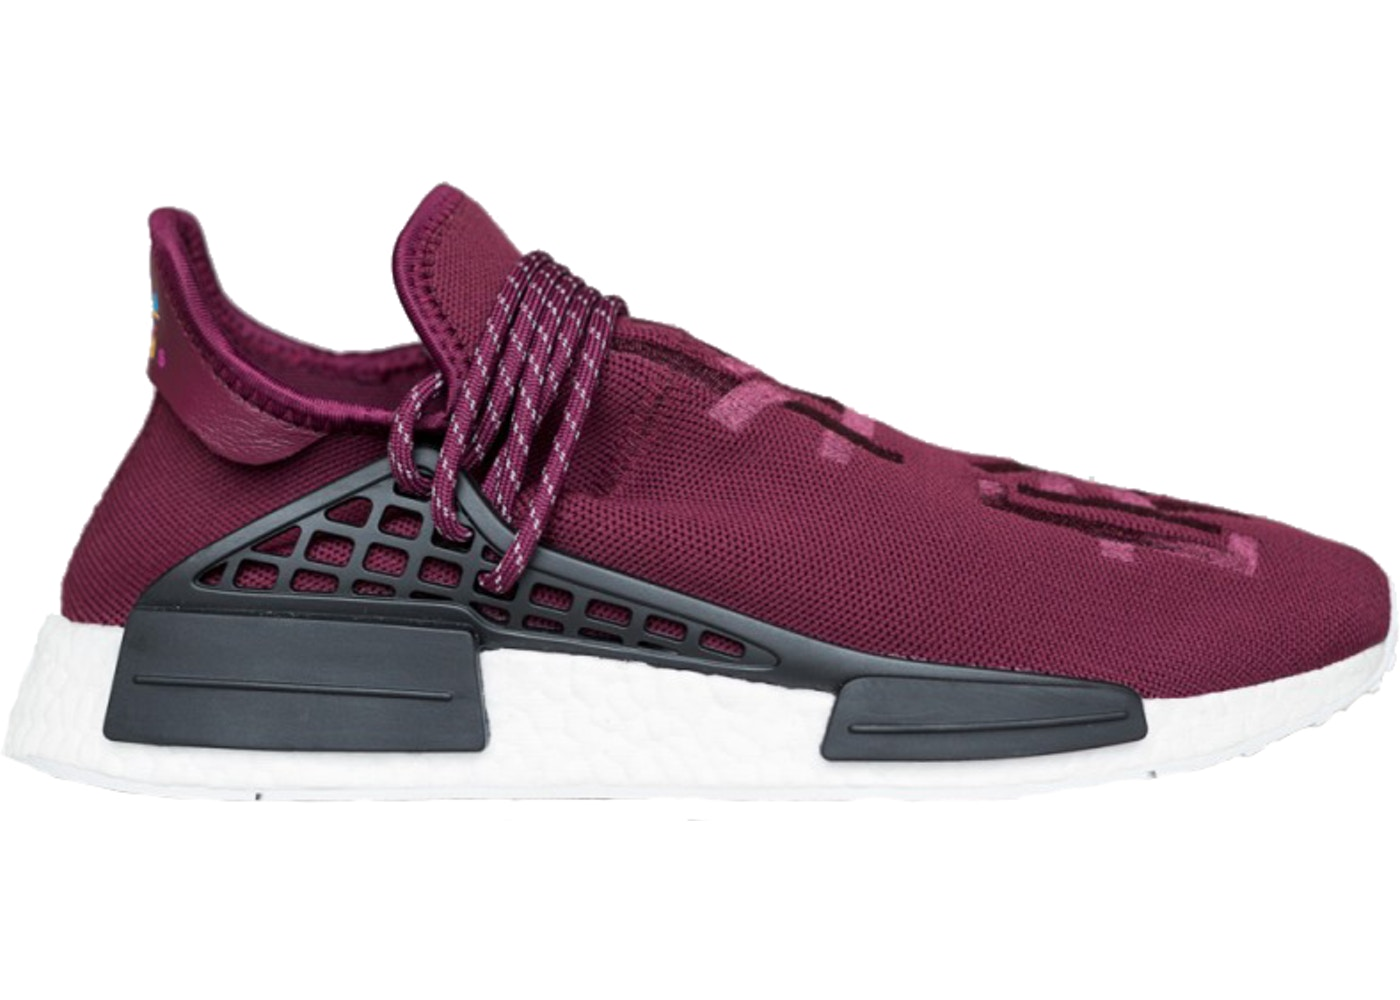 bdf9a2b7 adidas NMD R1 Pharrell HU Friends and Family Burgundy - BB0617